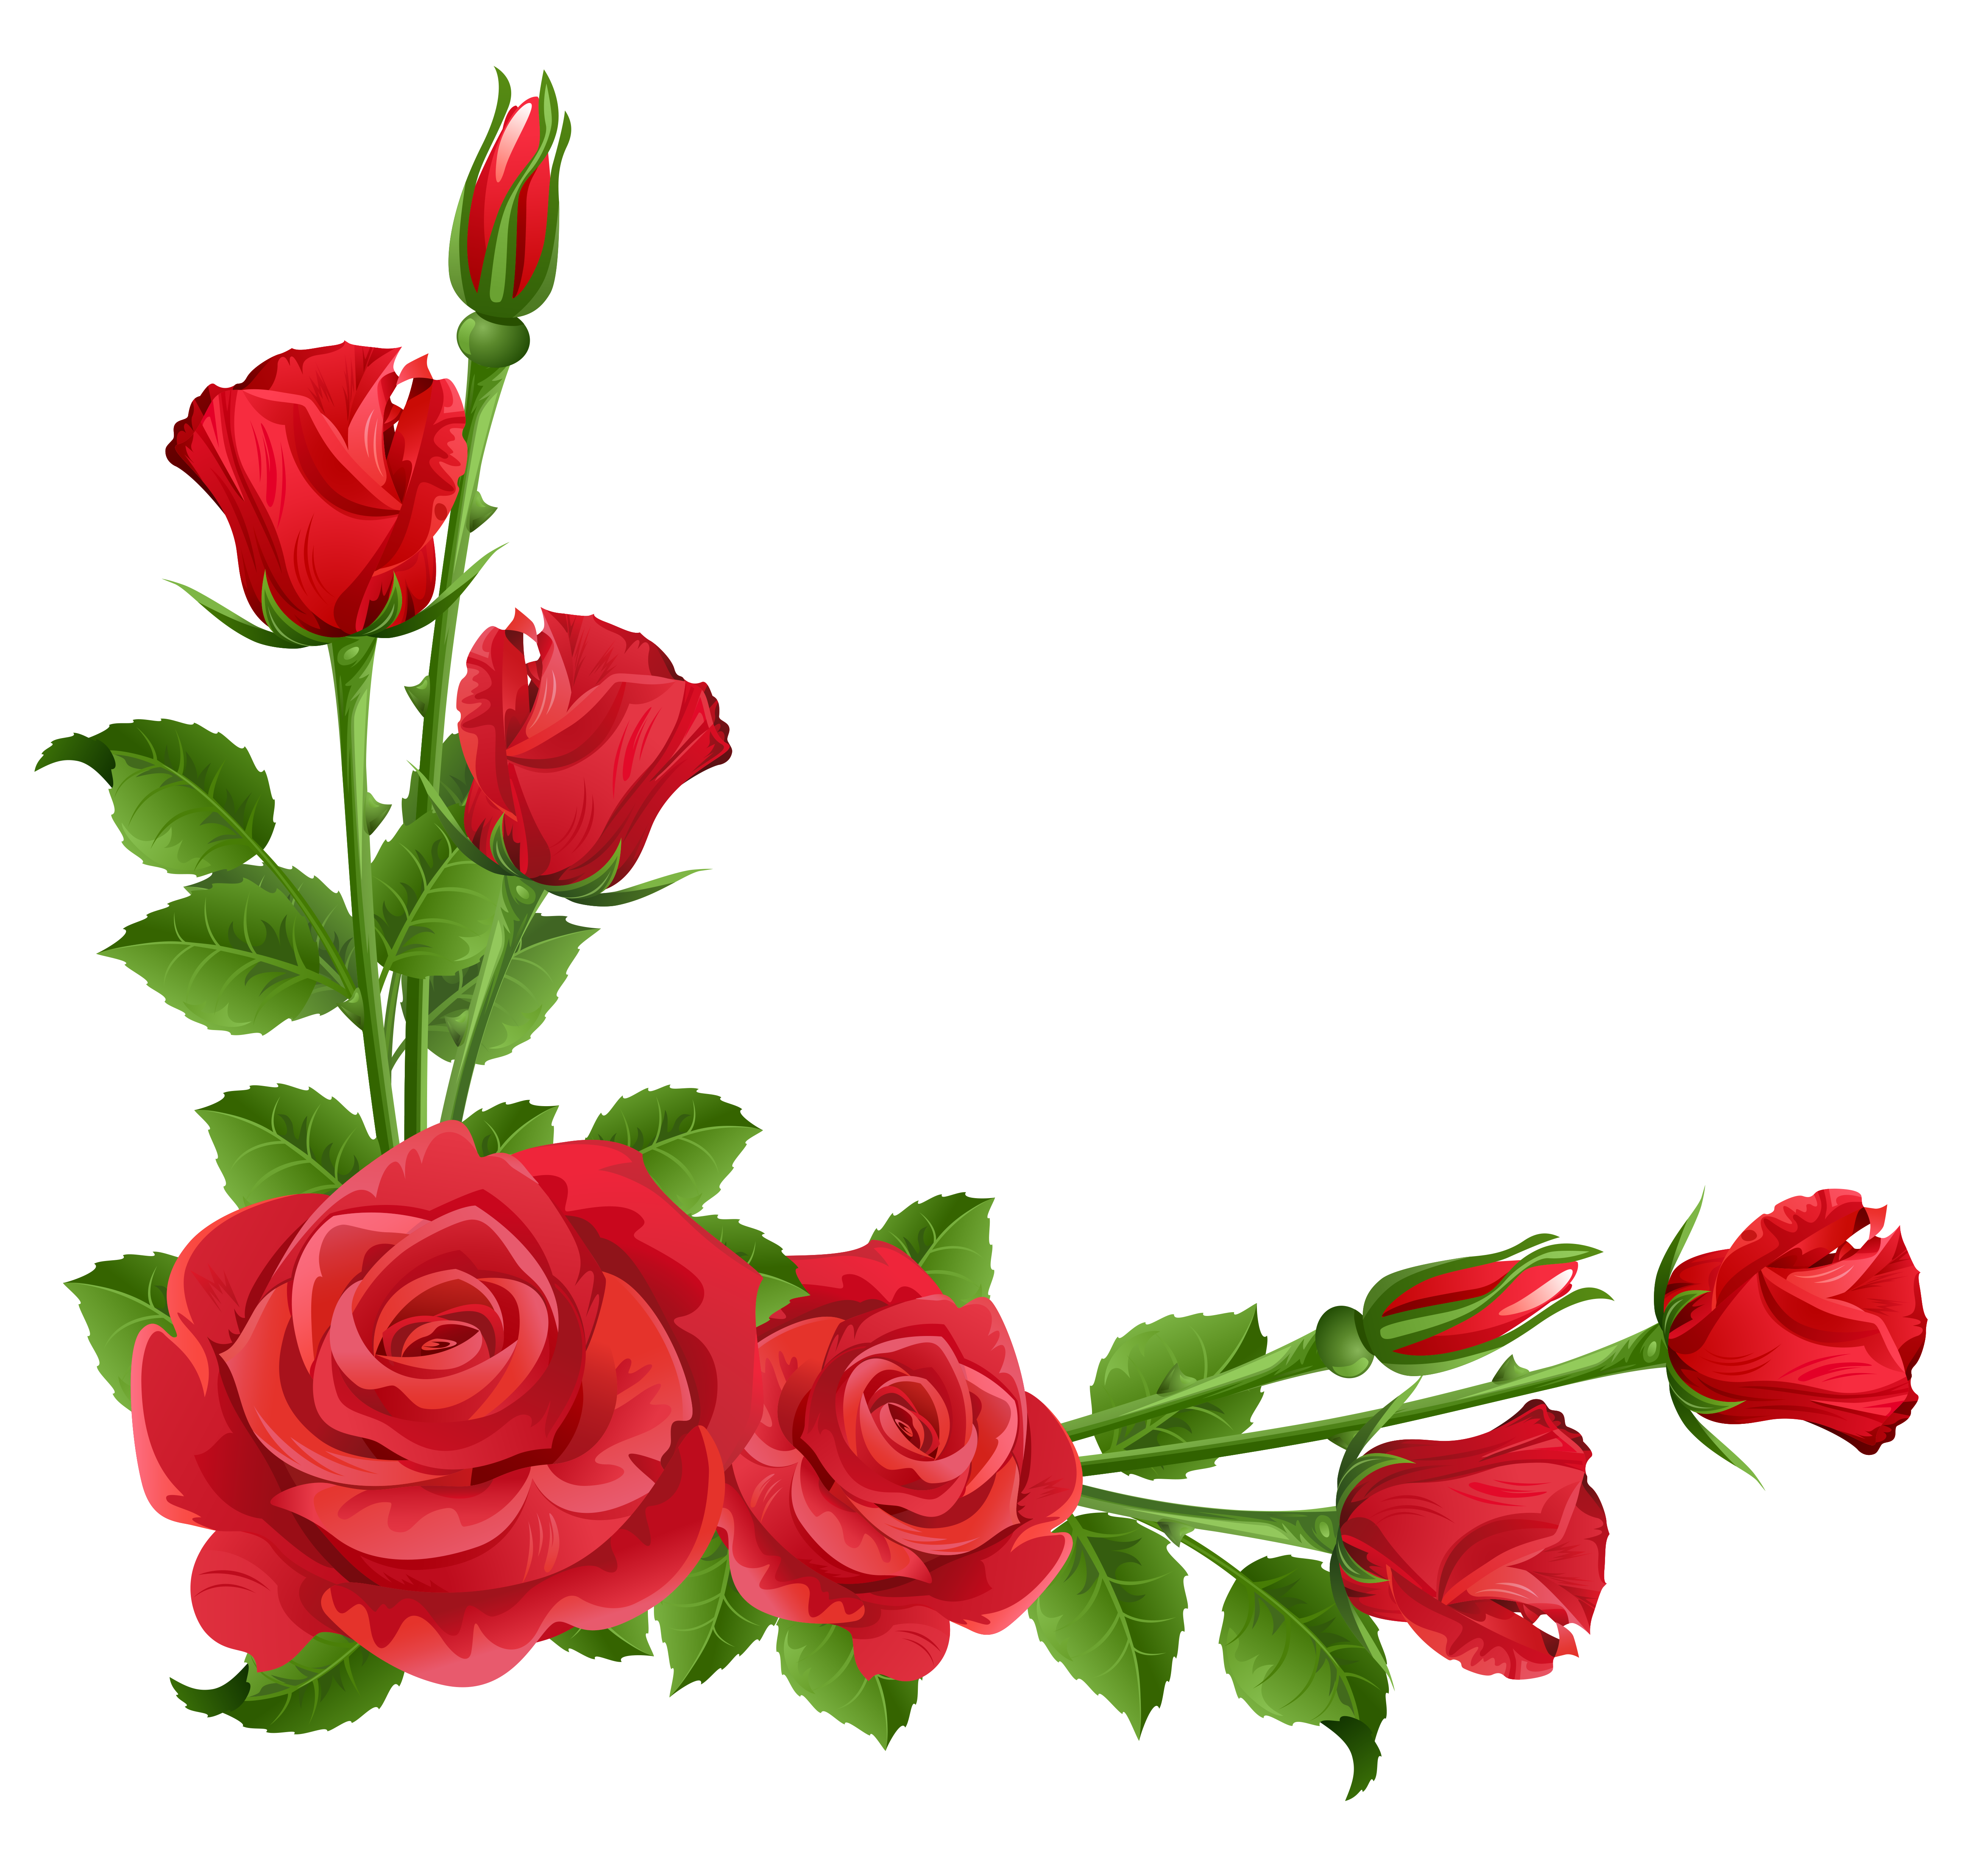 Silver rose corner border with cross clipart clipart free Pin by Kewal Parmar on Flowers   Flowers, Red roses ... clipart free